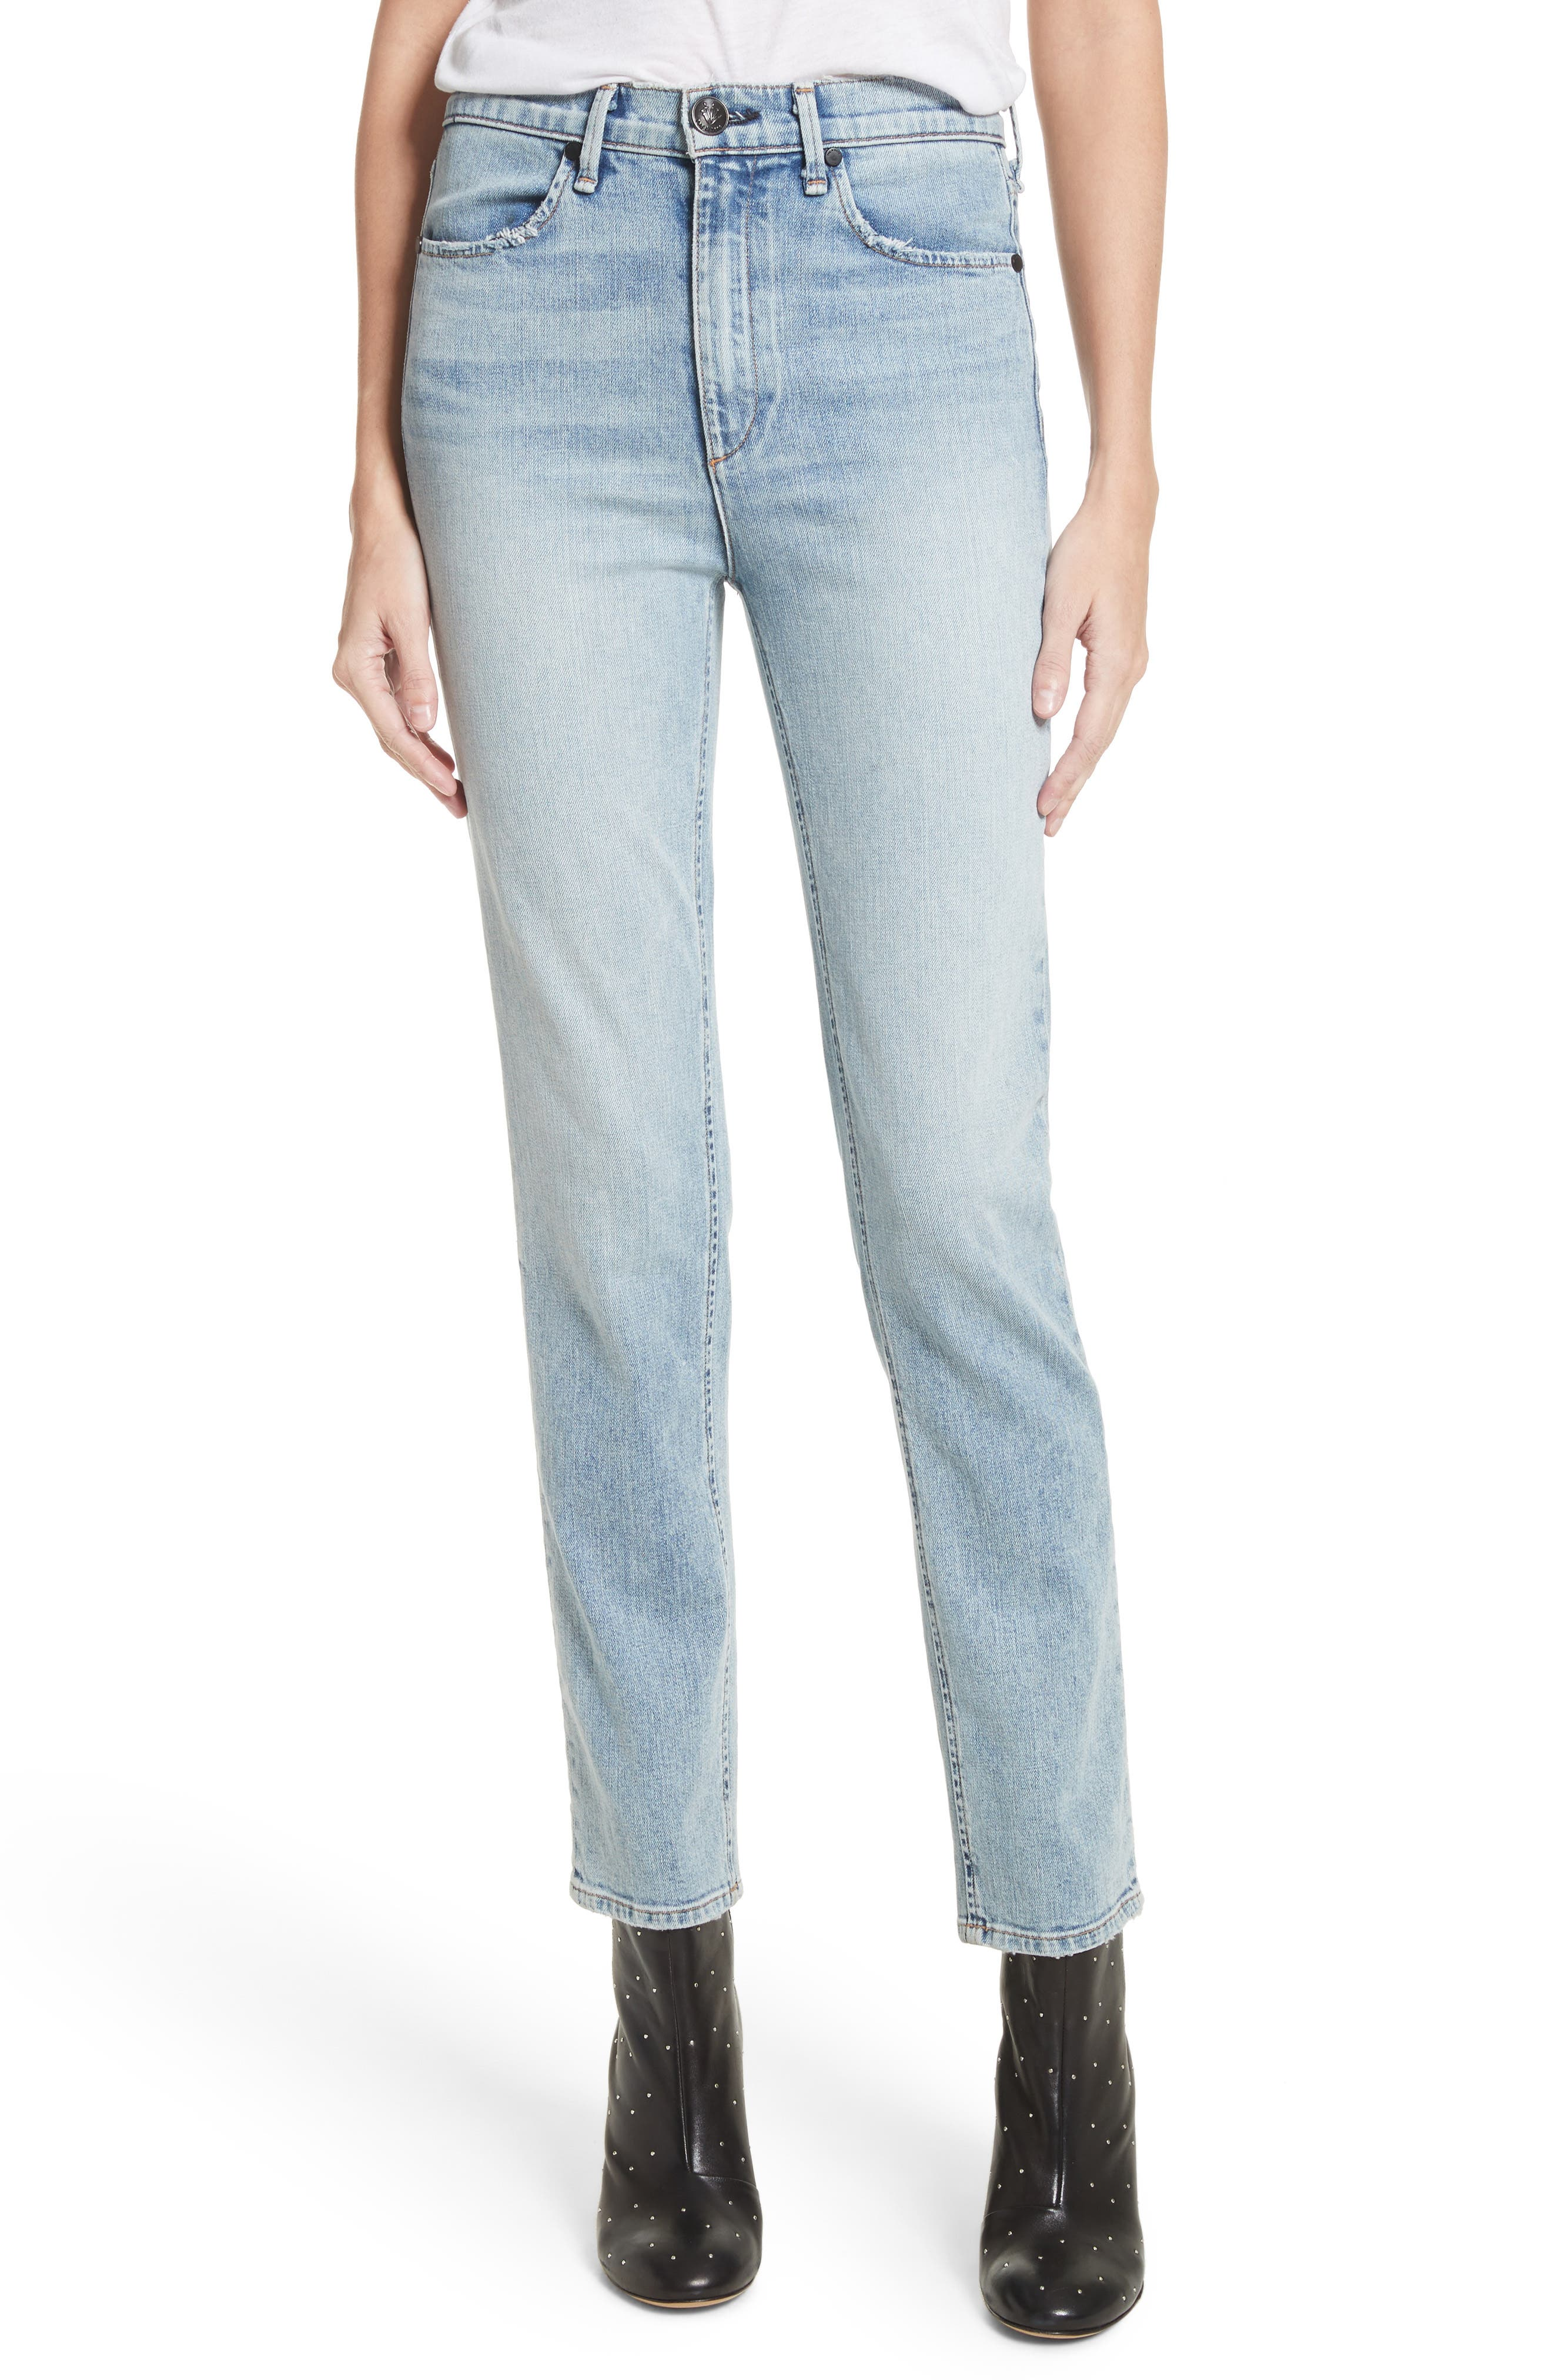 Alternate Image 1 Selected - rag & bone/JEAN Cigarette Leg Jeans (Double Down)